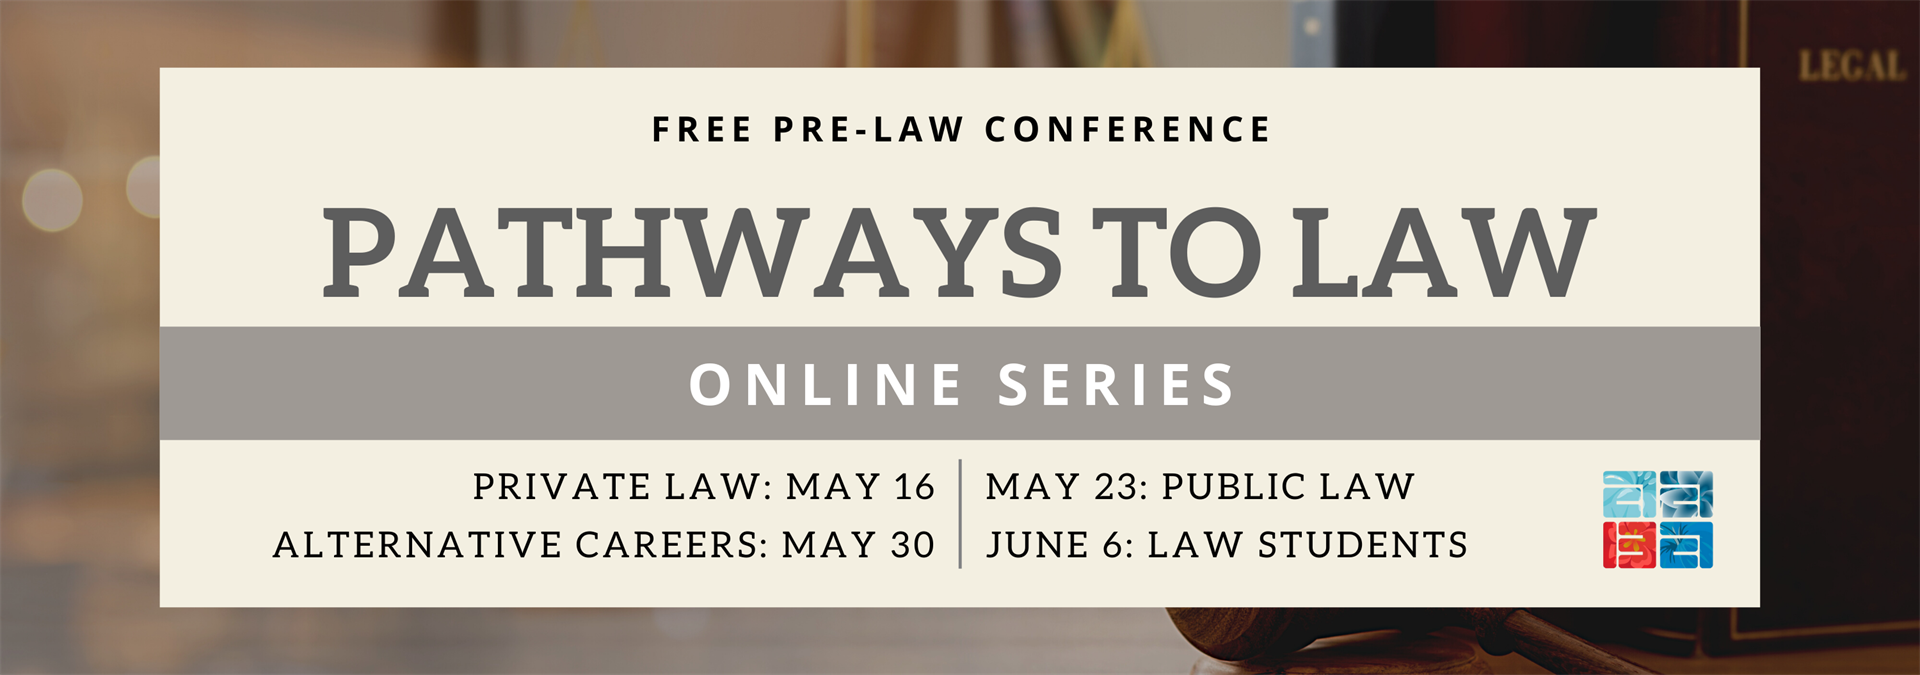 Pathways to Law Conference